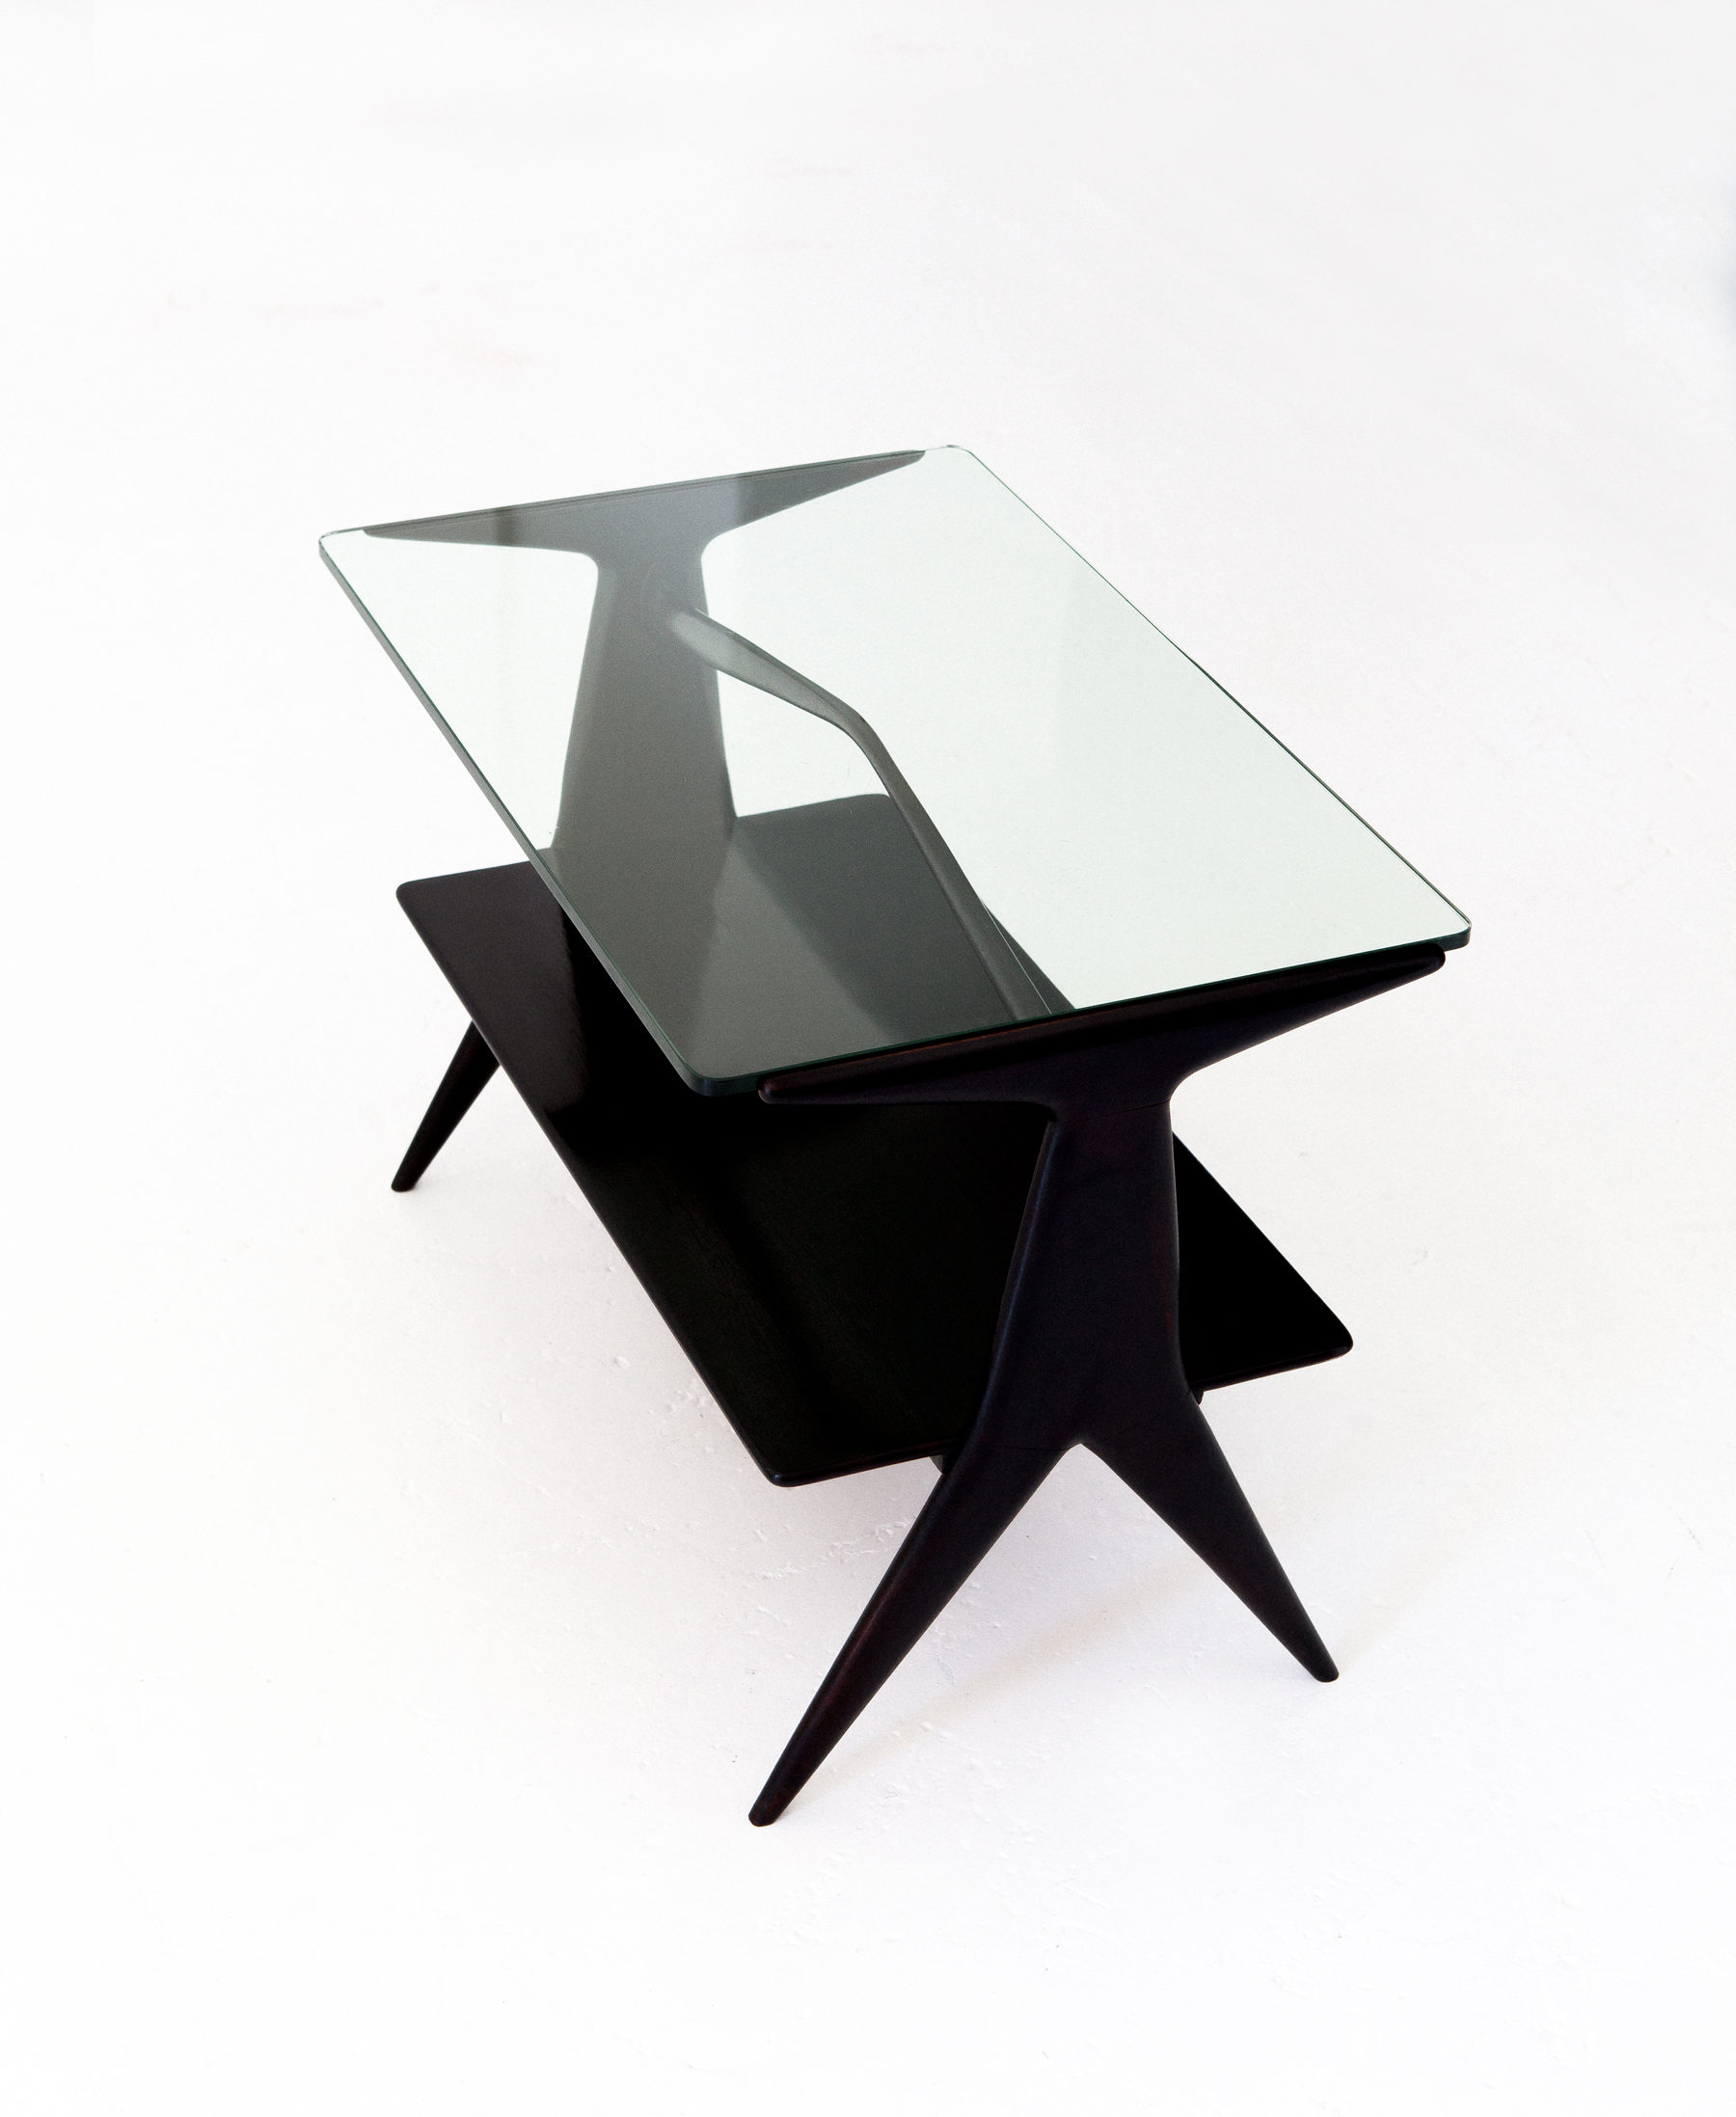 table-73.5